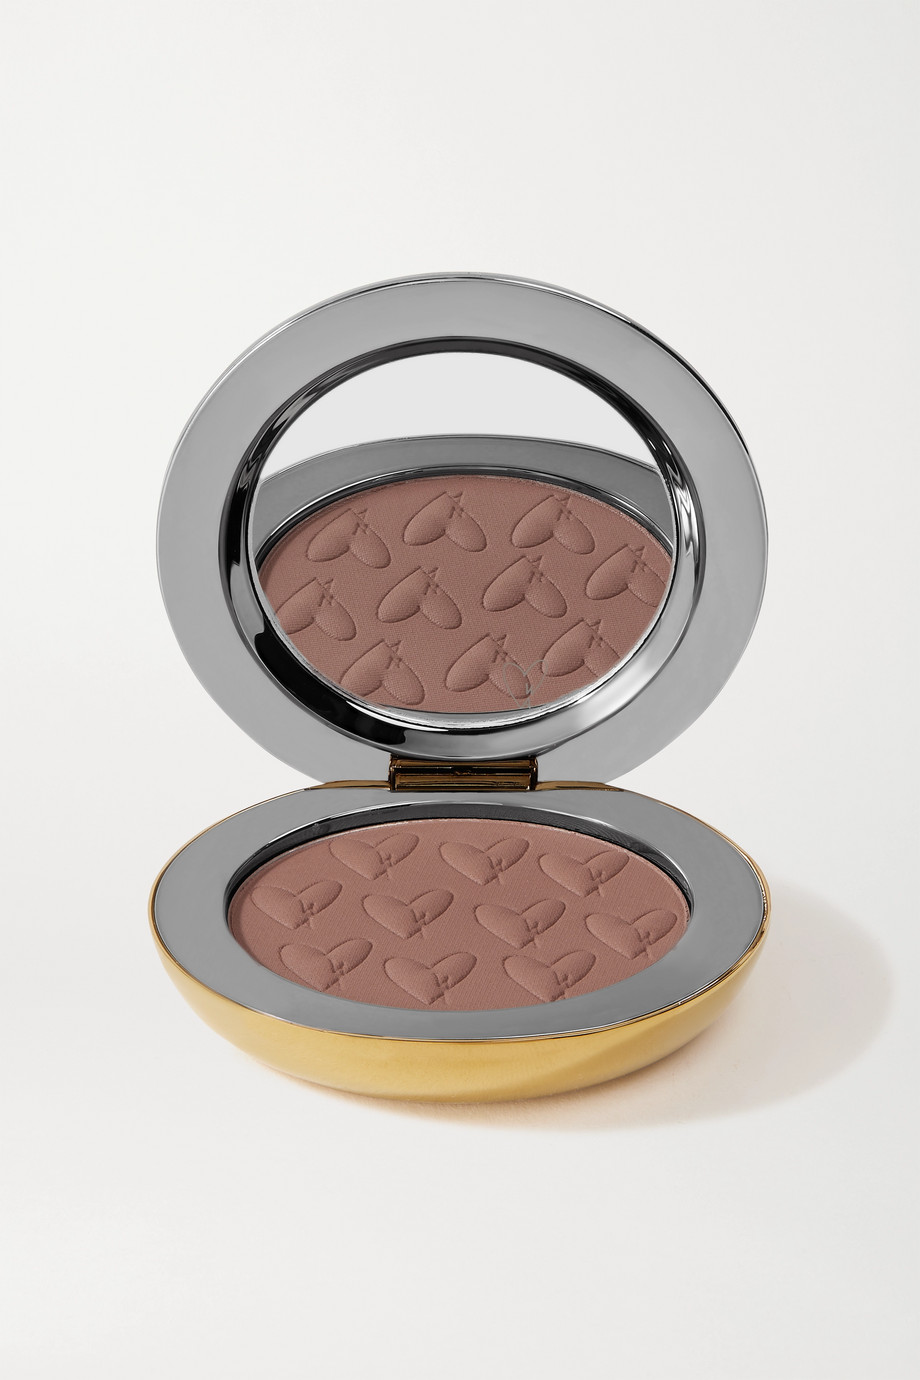 WESTMAN ATELIER Beauty Butter Powder Bronzer - Soleil Riche